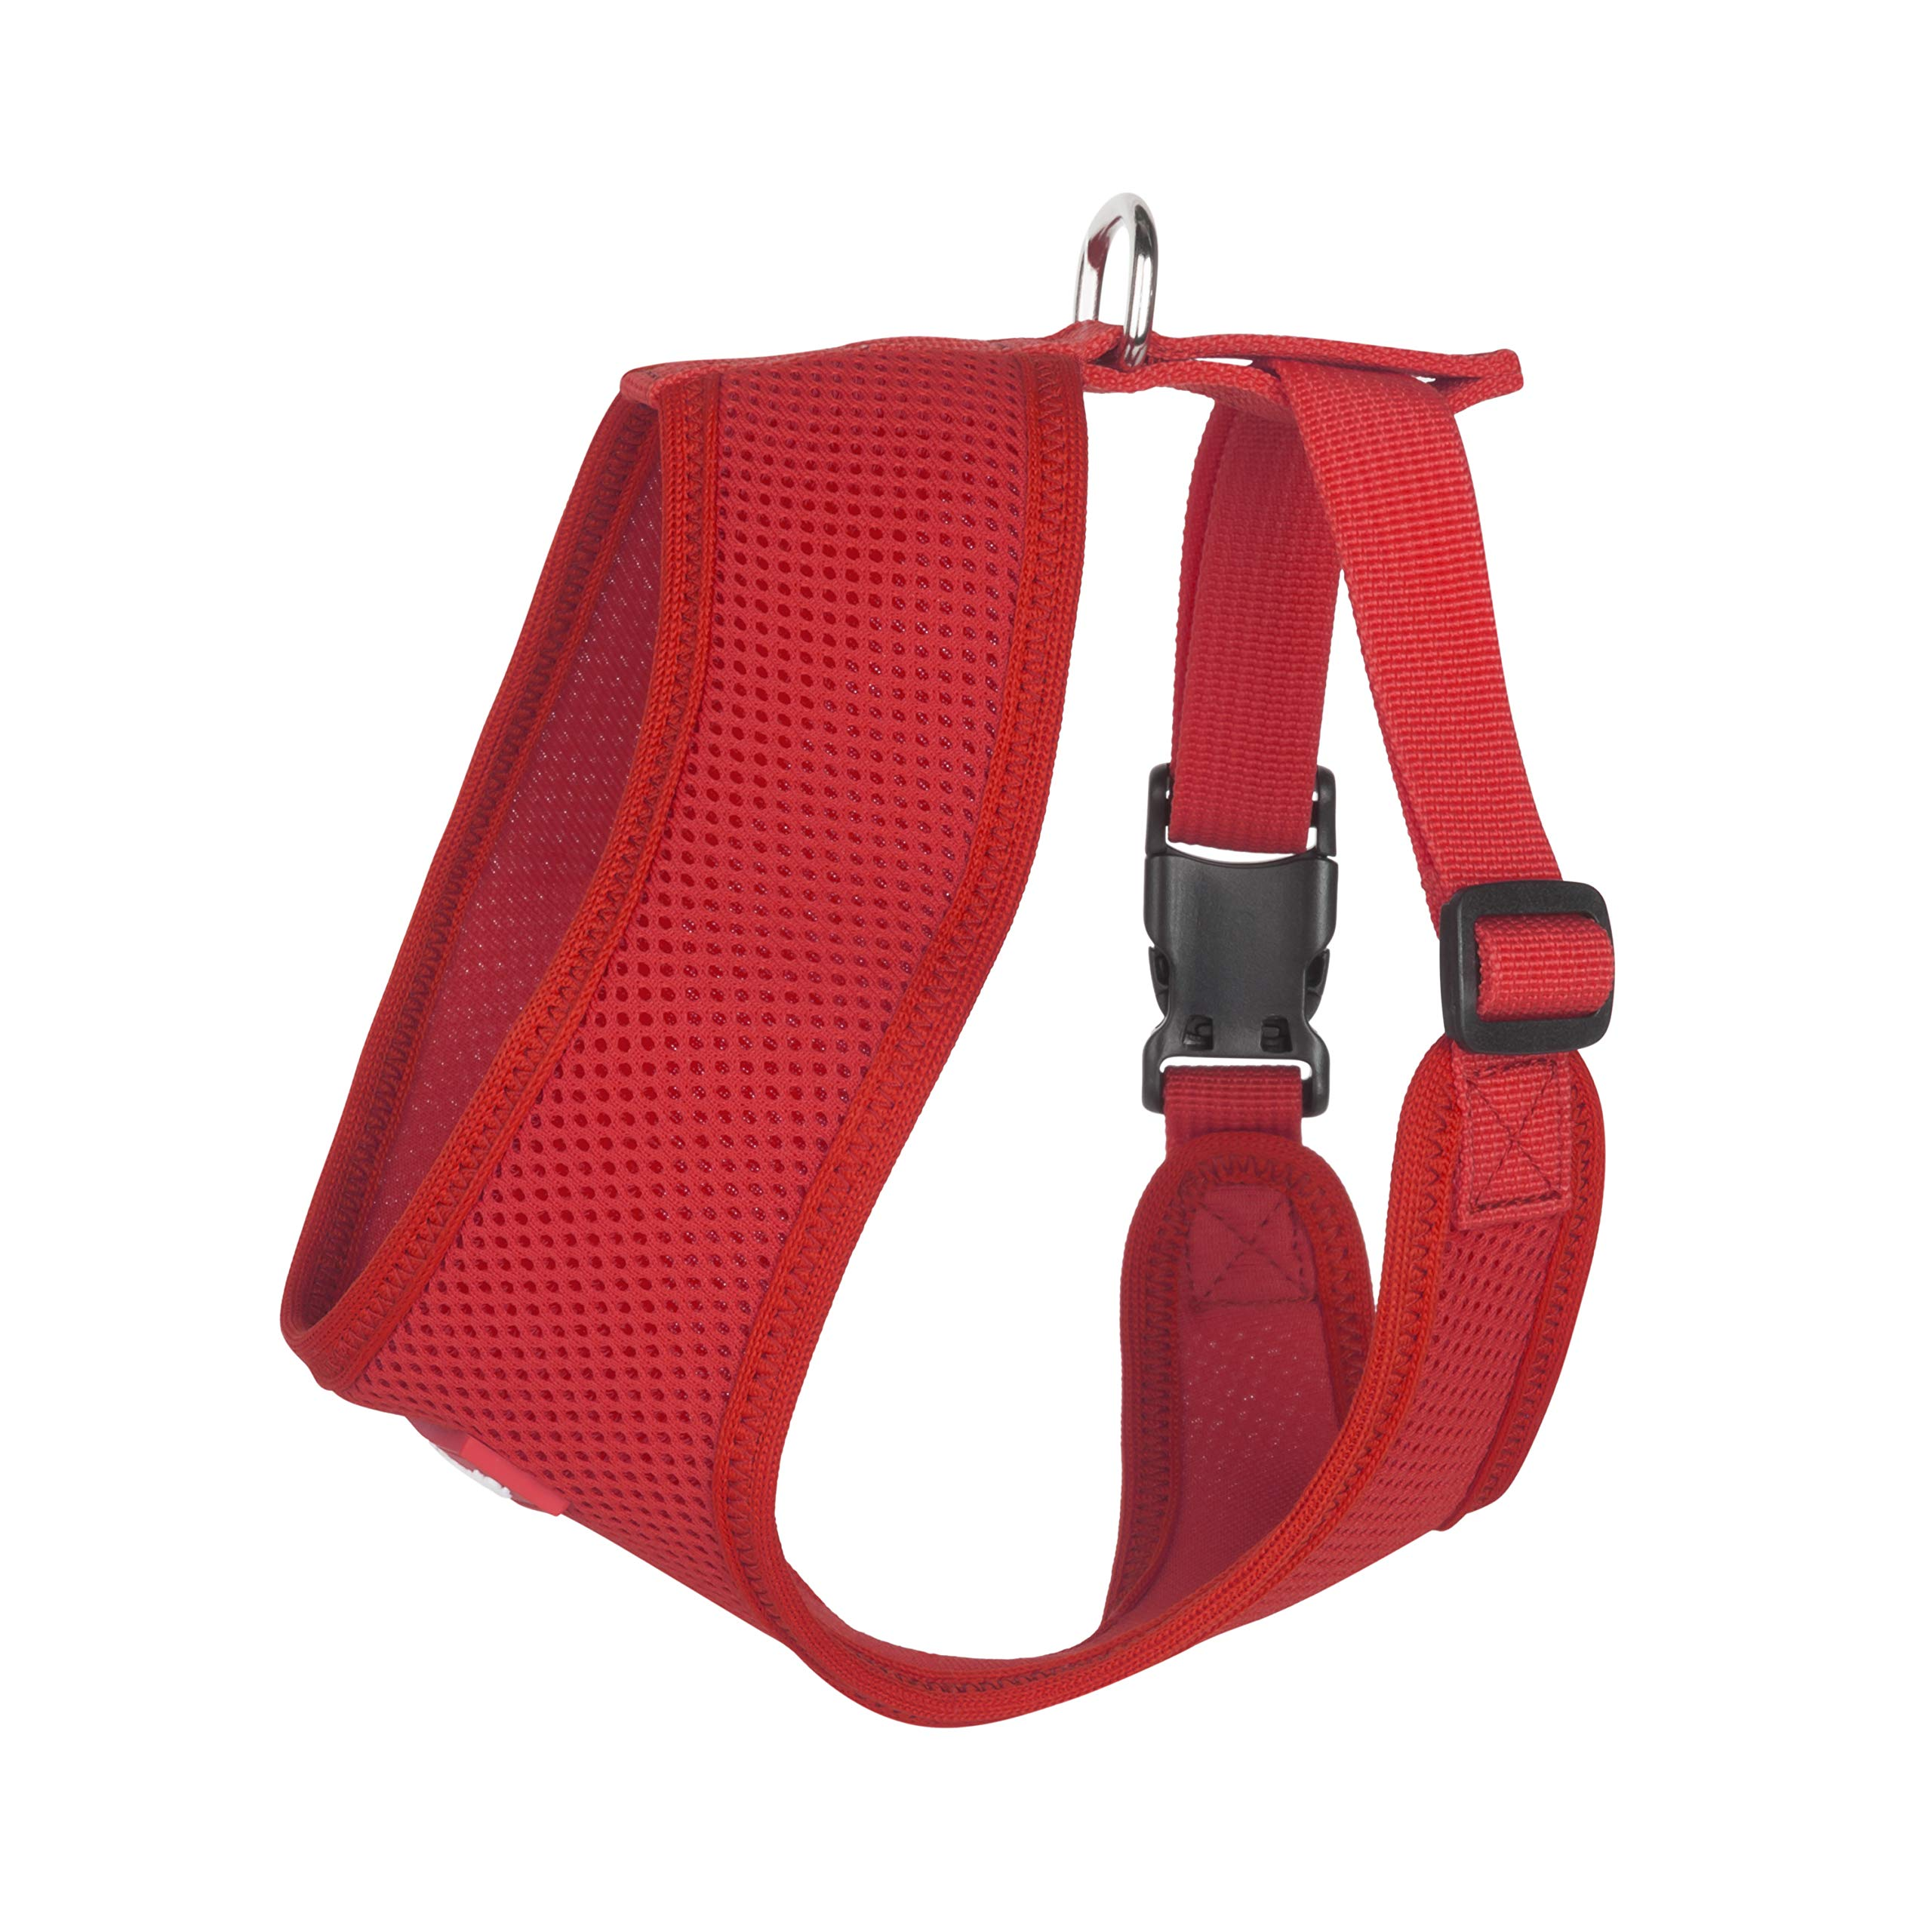 Hip Doggie Award Winning, Ultra Comfort Red Mesh Harness Vest - L by Hip Doggie